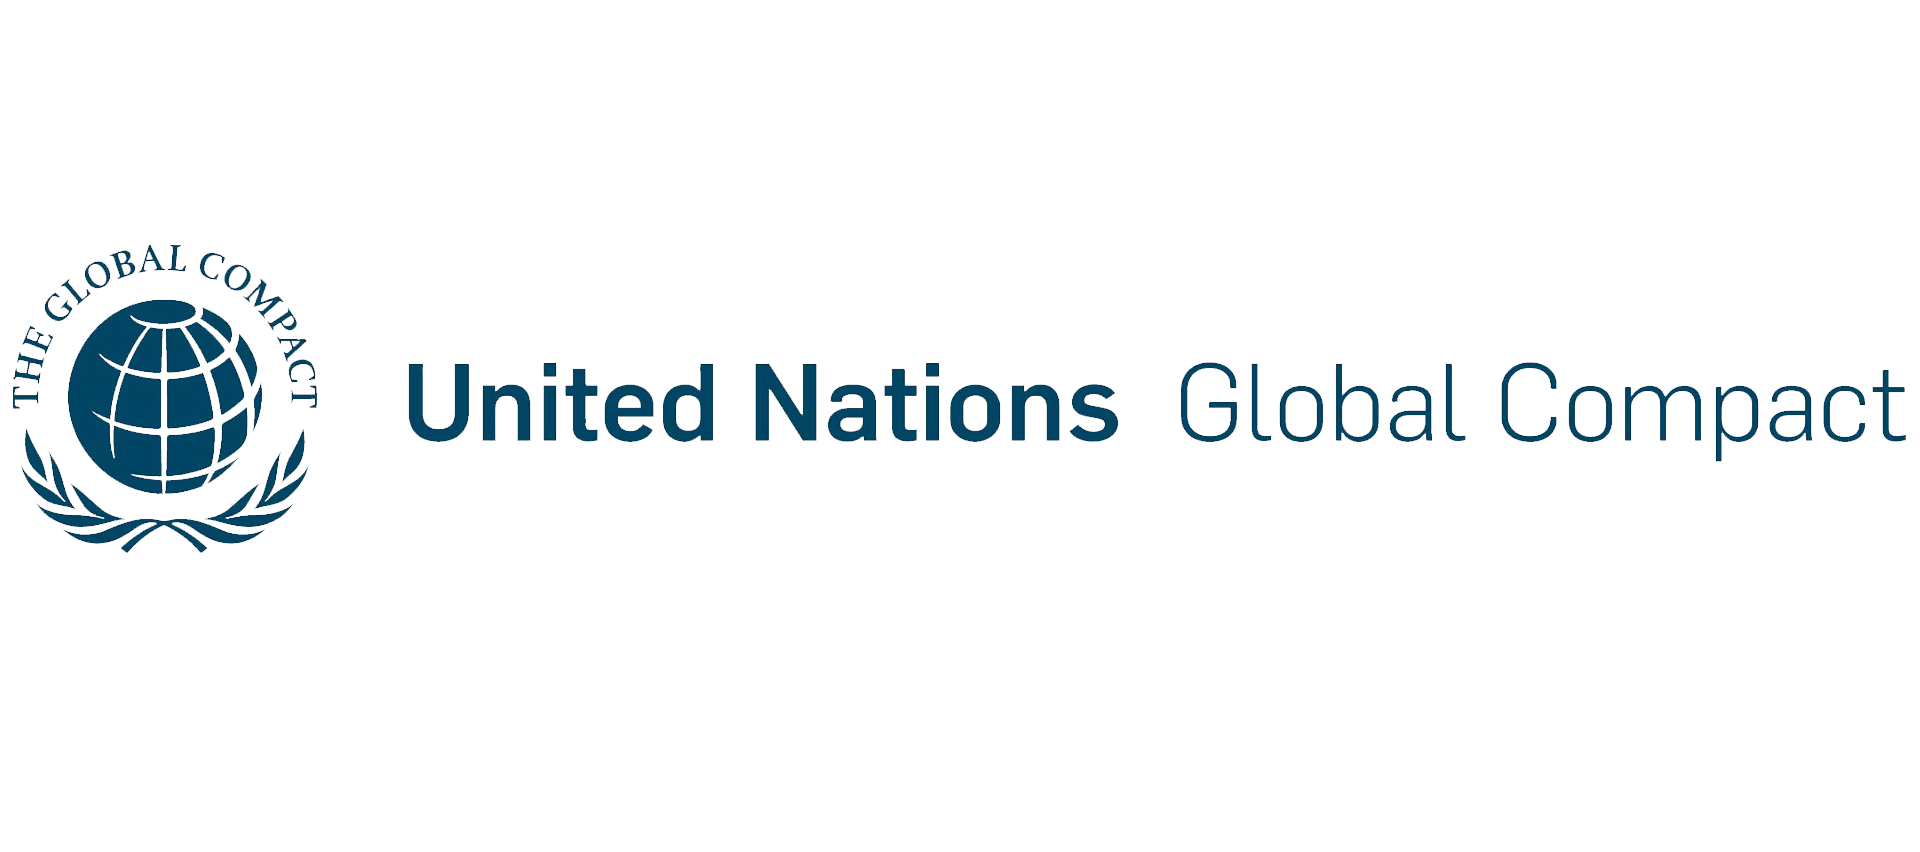 About the UN Global Compact